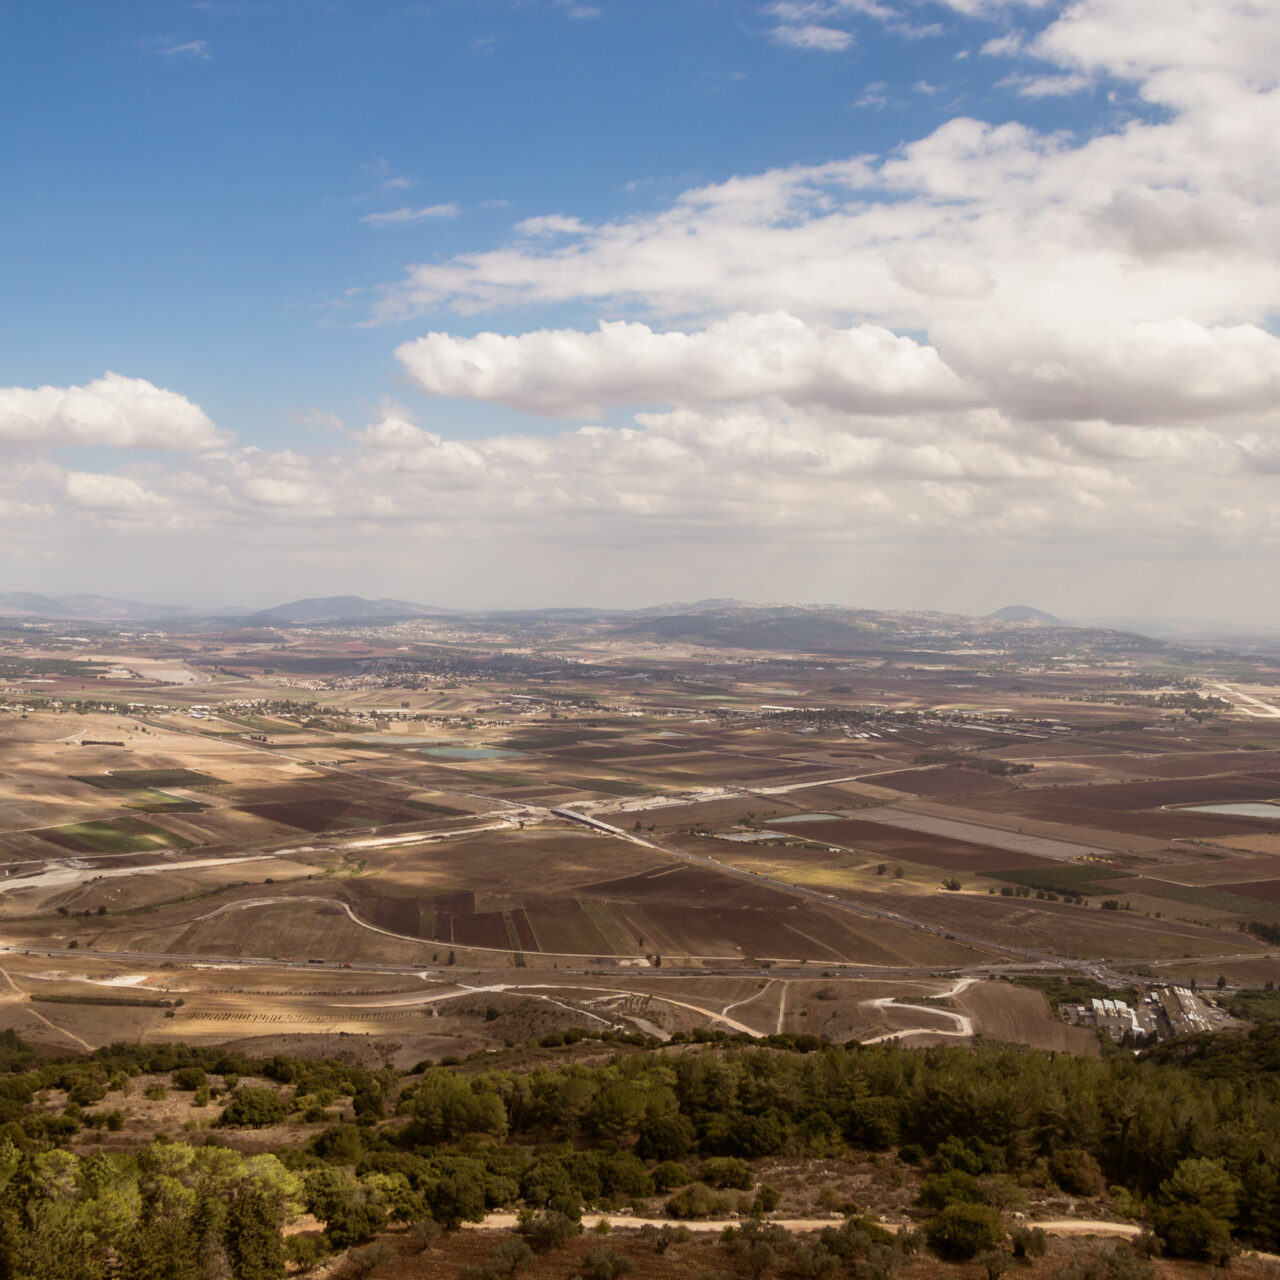 Megido valley, Armageddon battle place with empty fields, cloudy sky, Tel Megido, Israel